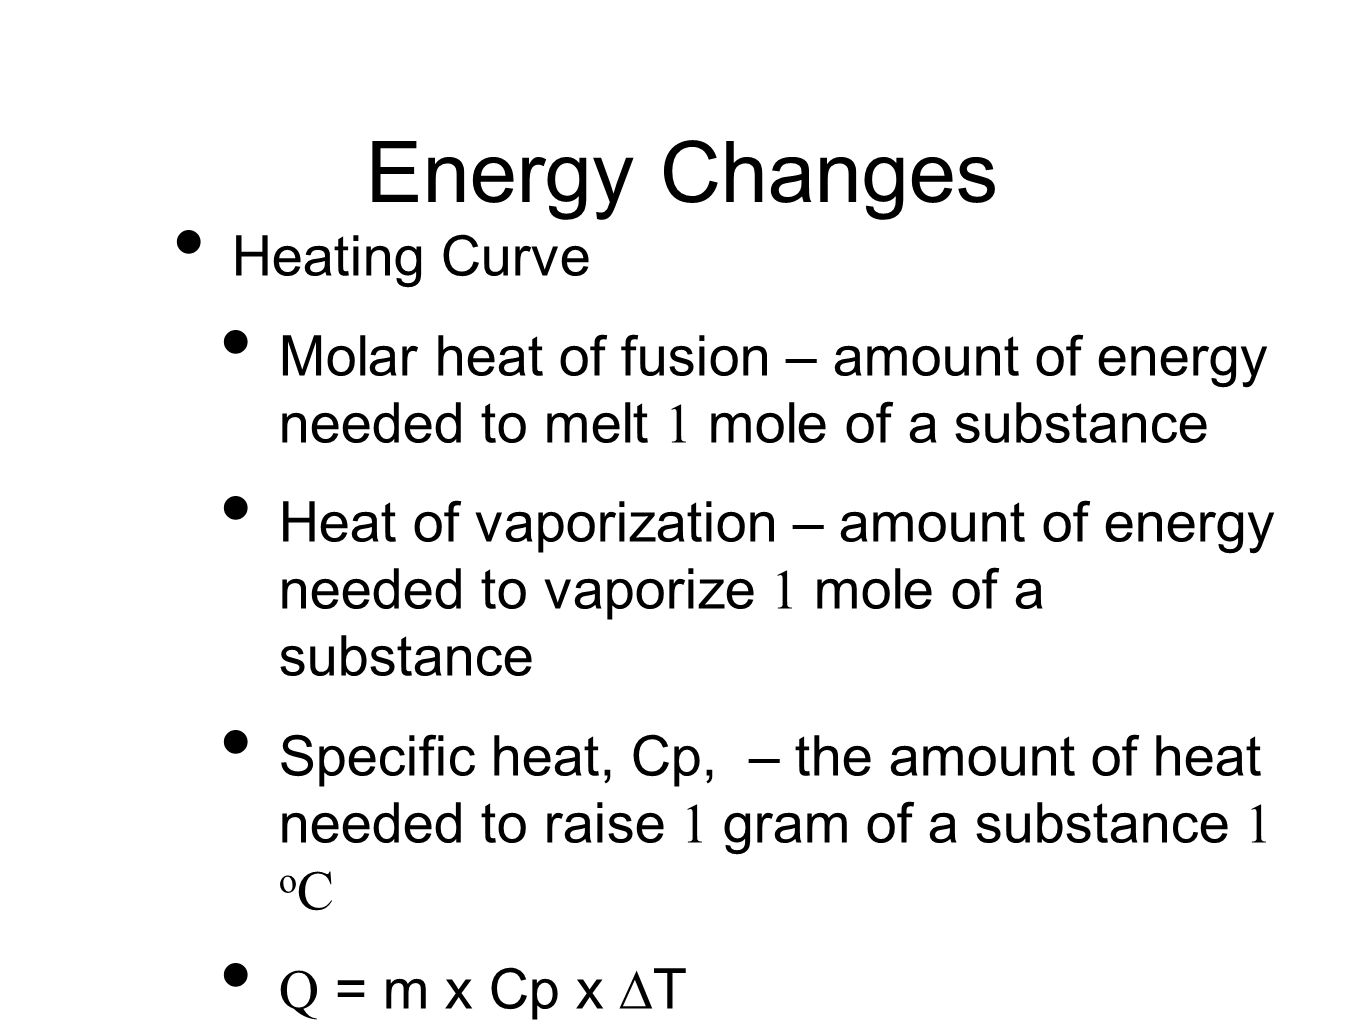 worksheet Heat Of Fusion And Vaporization Worksheet unit 8 liquids and solutions ppt video online download energy changes heating curve molar heat of fusion